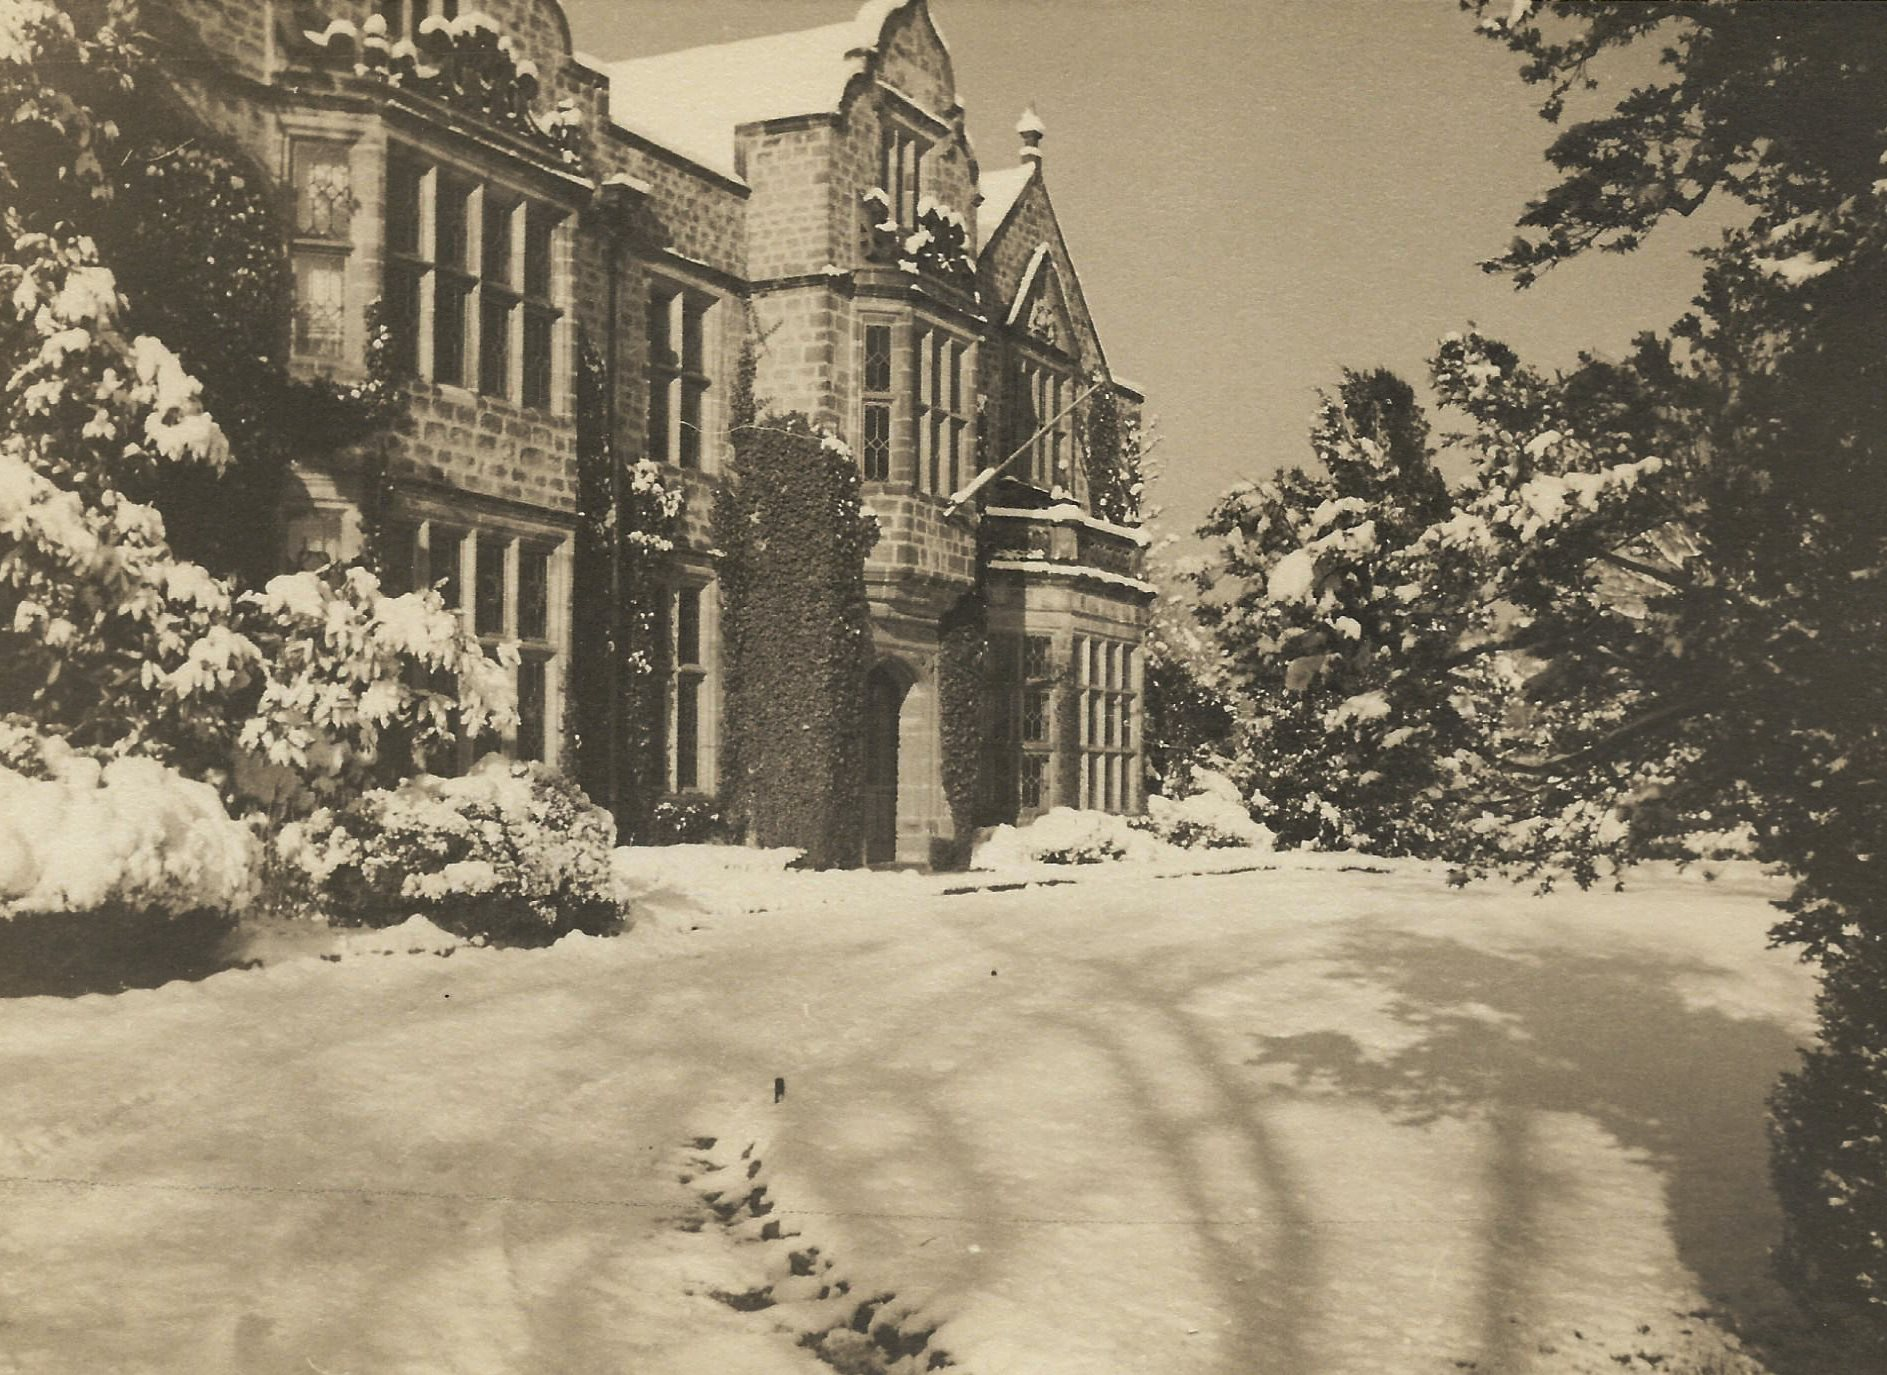 Virginia House in Winter. Archival Photograph from the Personal Collection of Alexander and Virginia Weddell, courtesy of the Virginia House Museum.